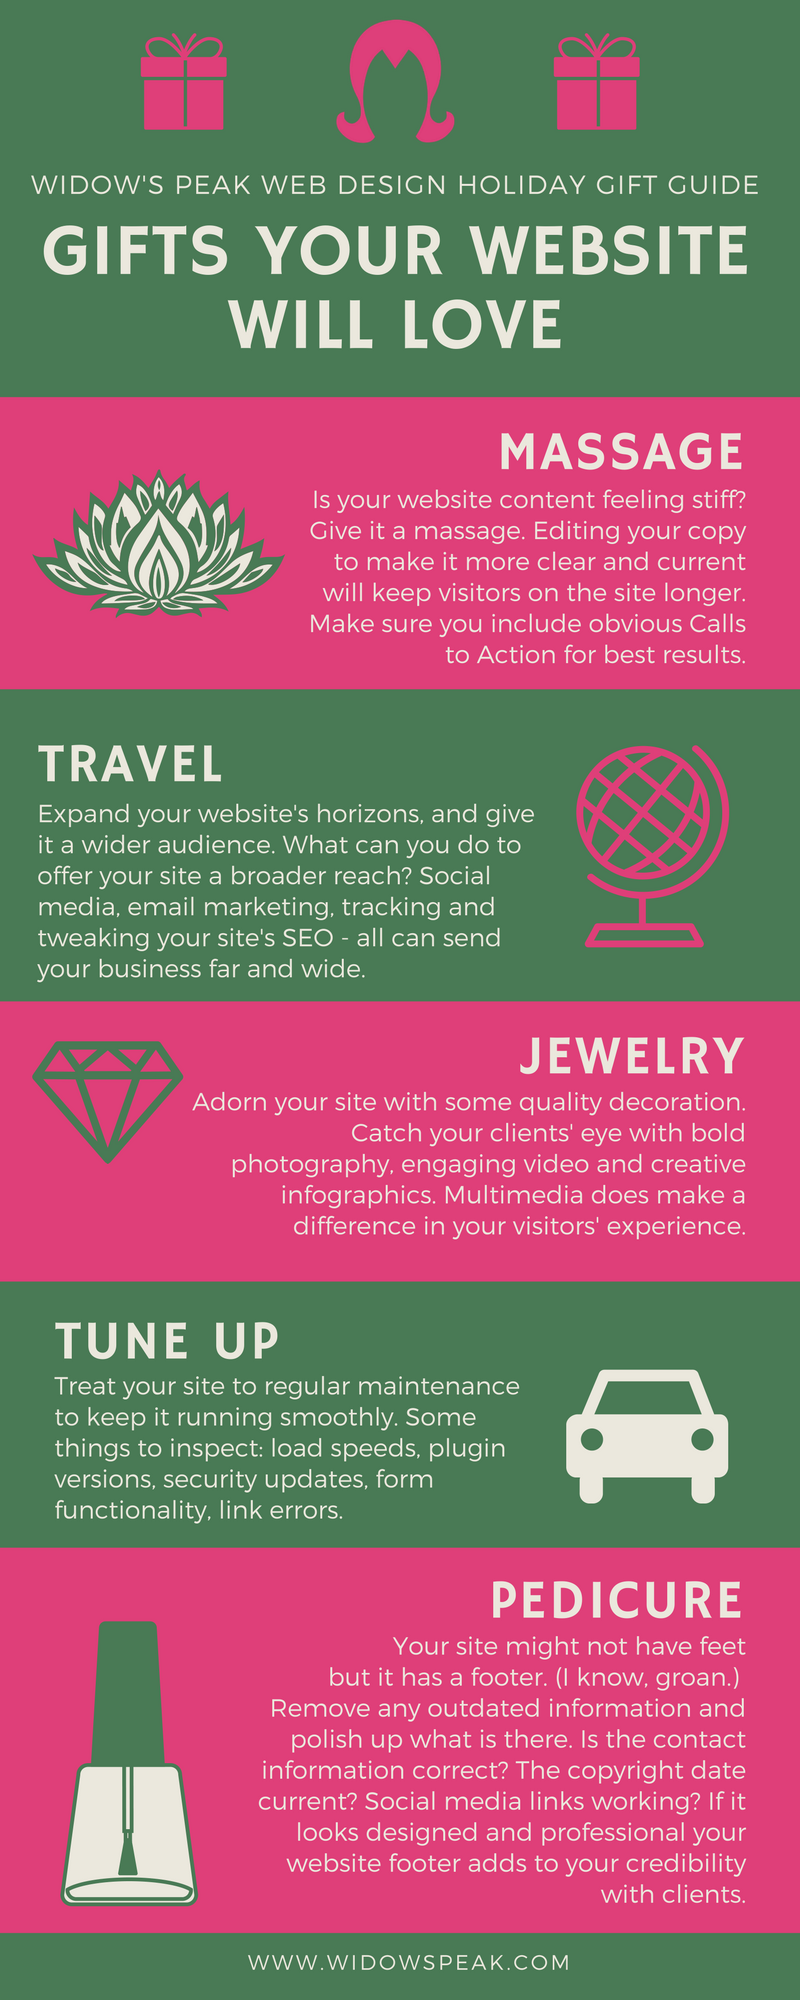 infographic - 2016 Holiday Gift Guide for your Website